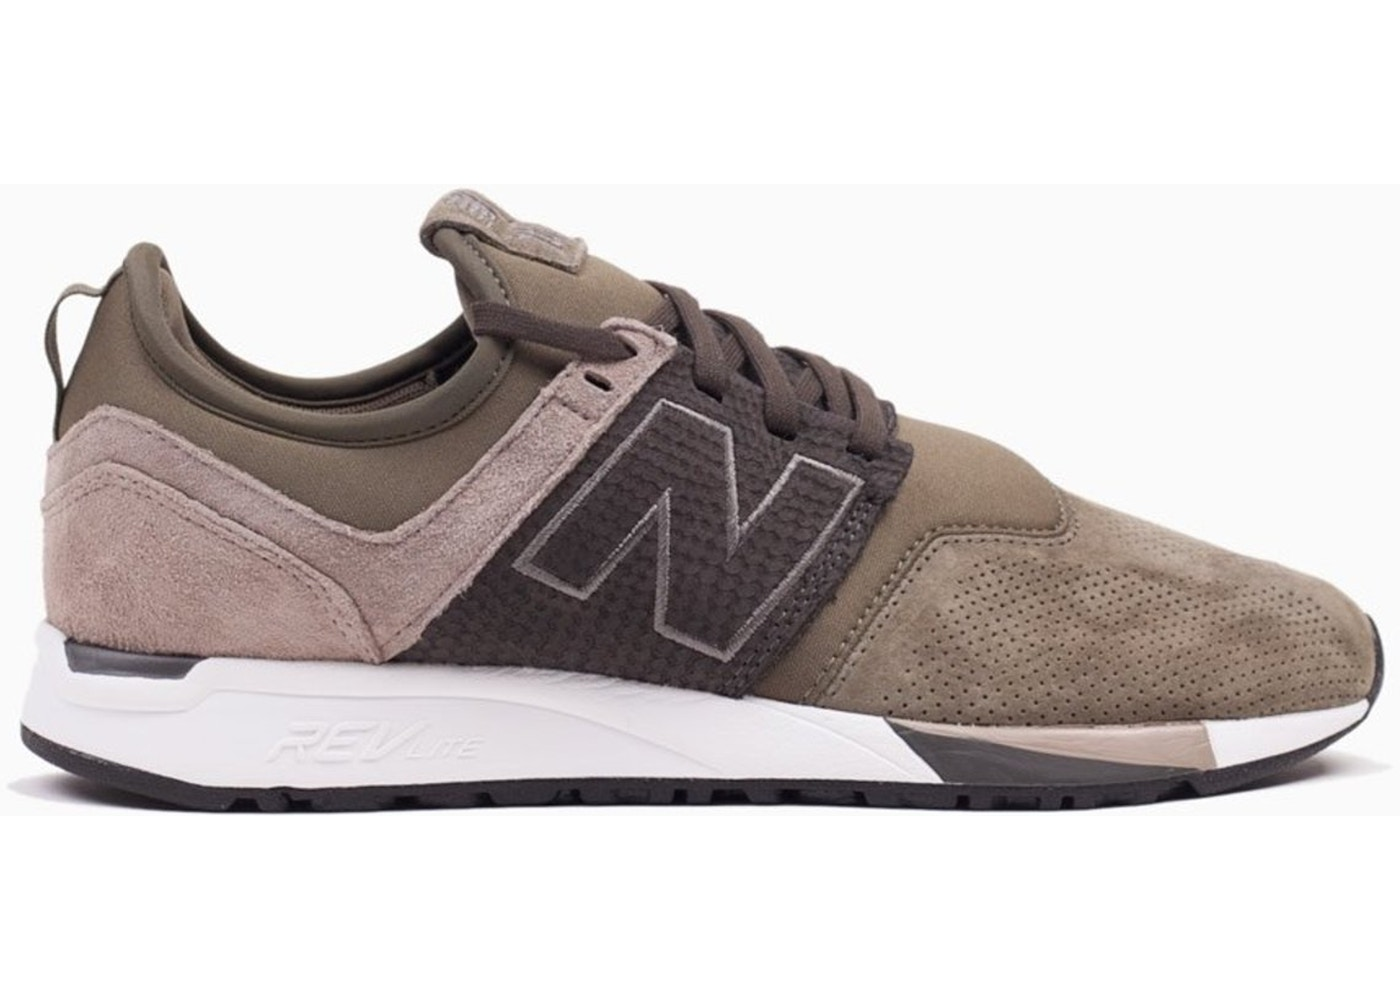 New Balance 247 Luxe Olive - MRL247RG